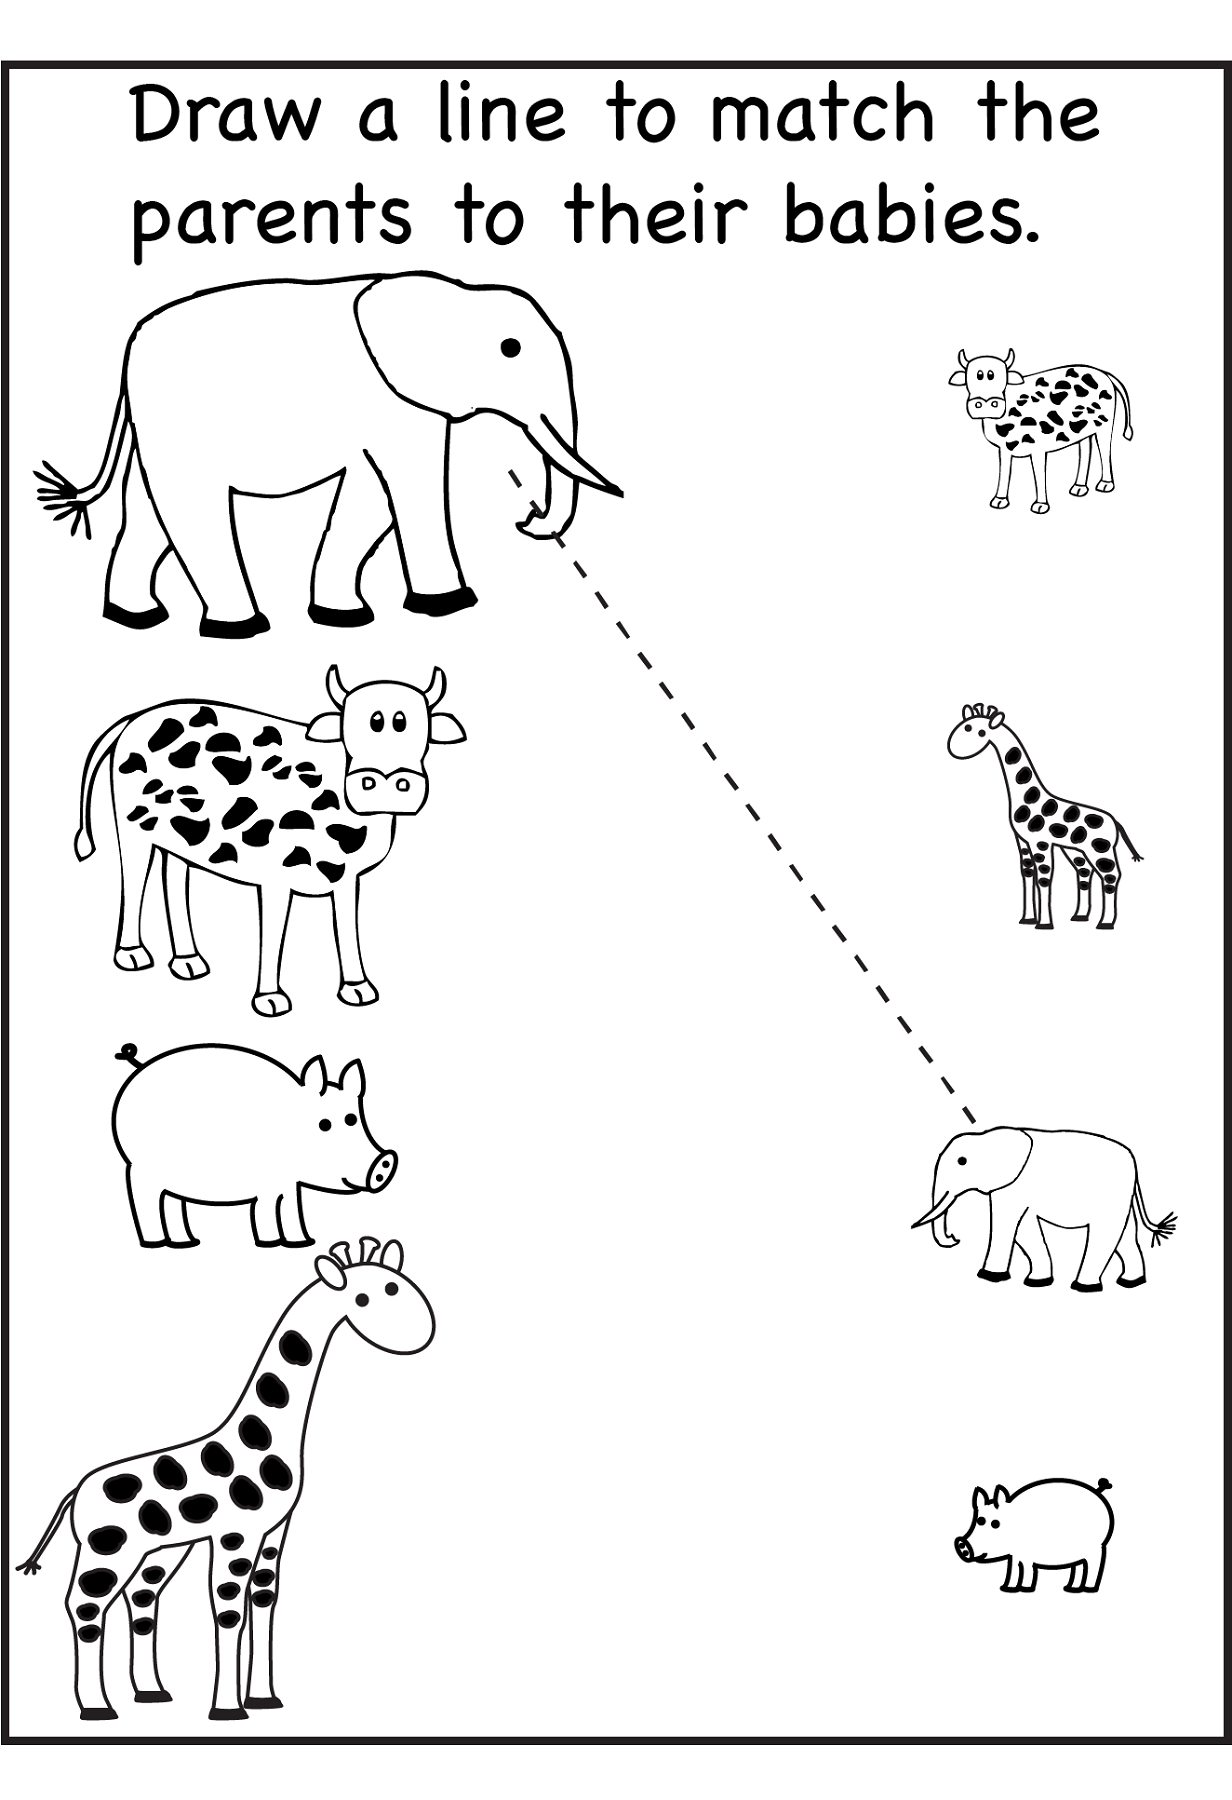 Printable Activity Sheets for Kids | Activity Shelter | Kids ...